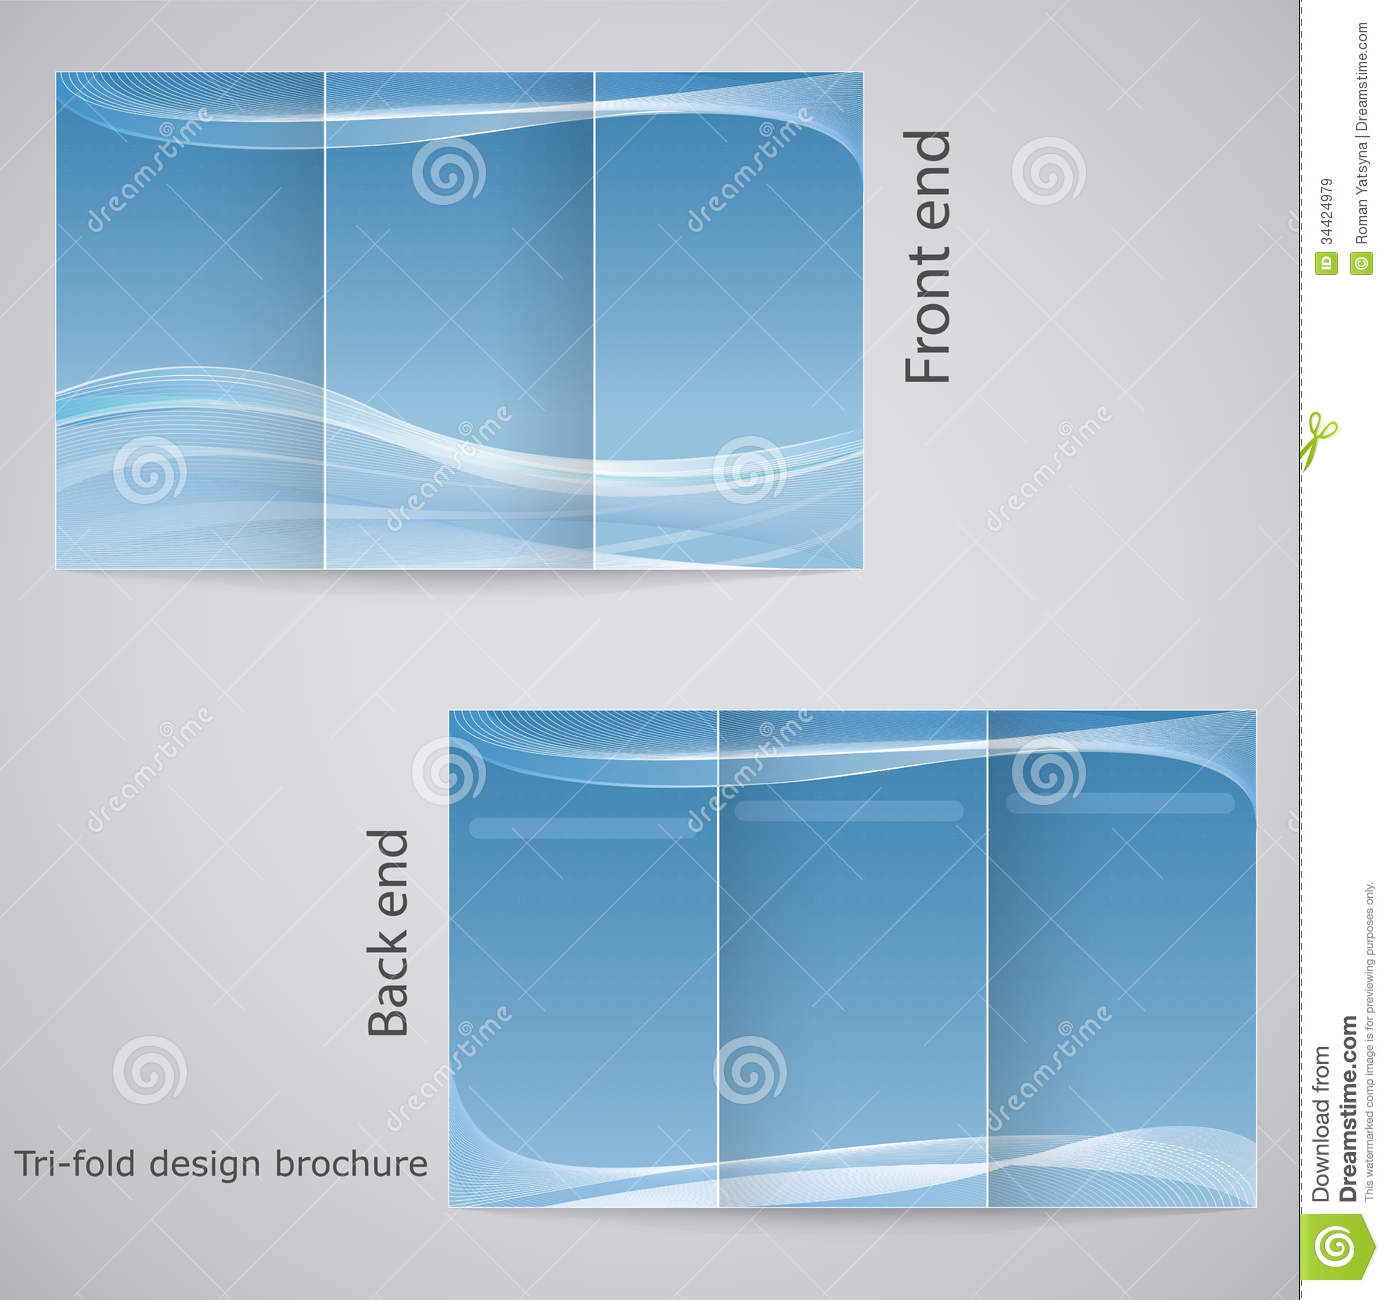 17 tri fold brochure design templates images tri fold for Trifold brochure template free